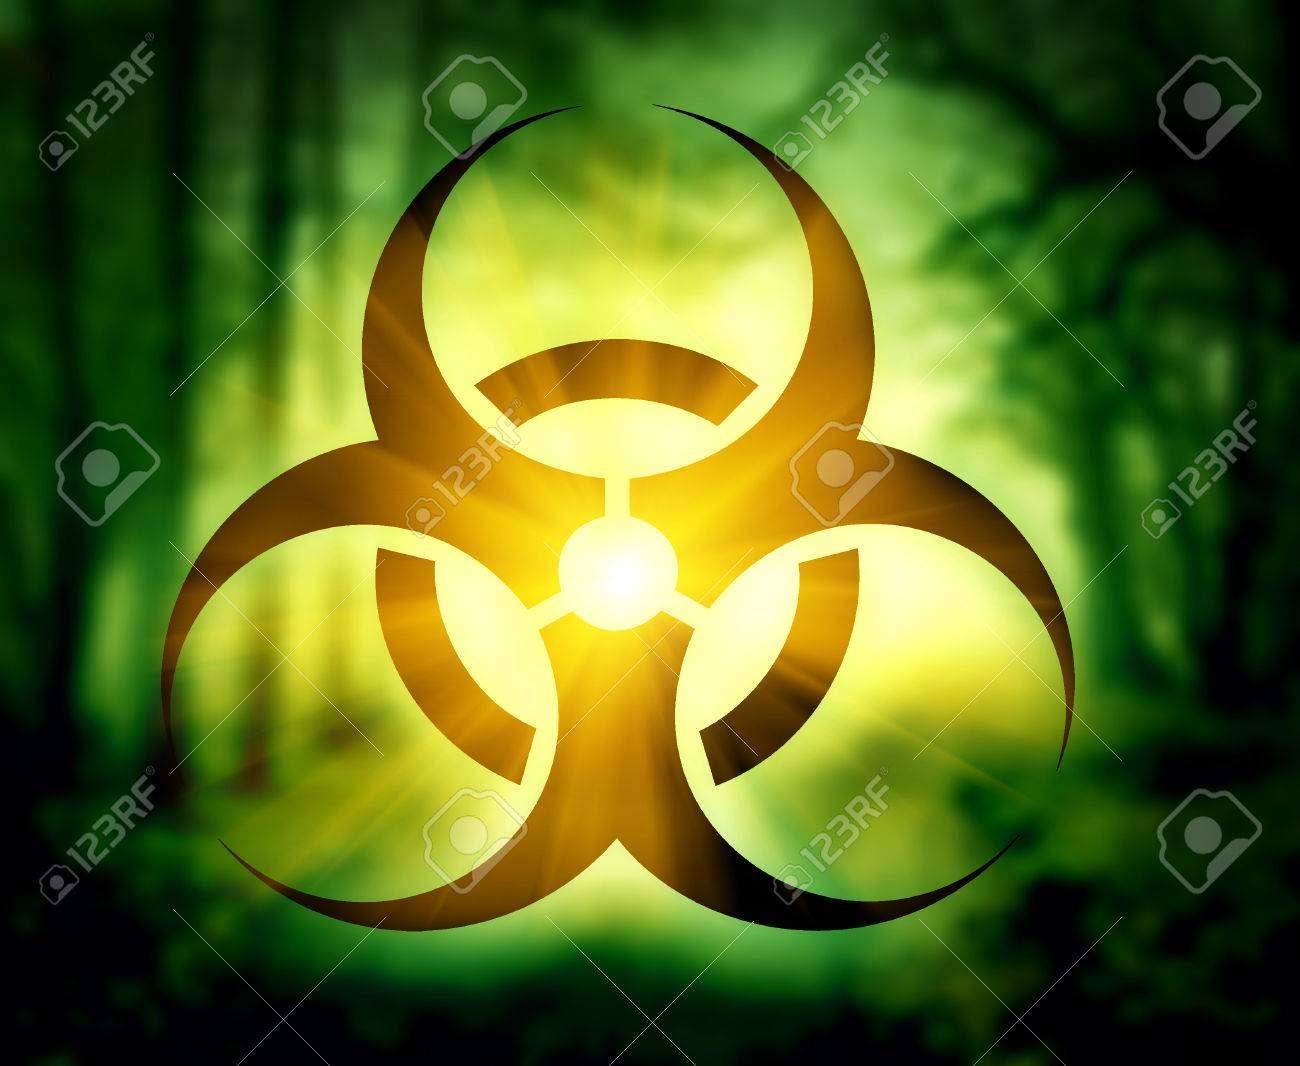 Biohazard symbol with glowing forest - 49282246